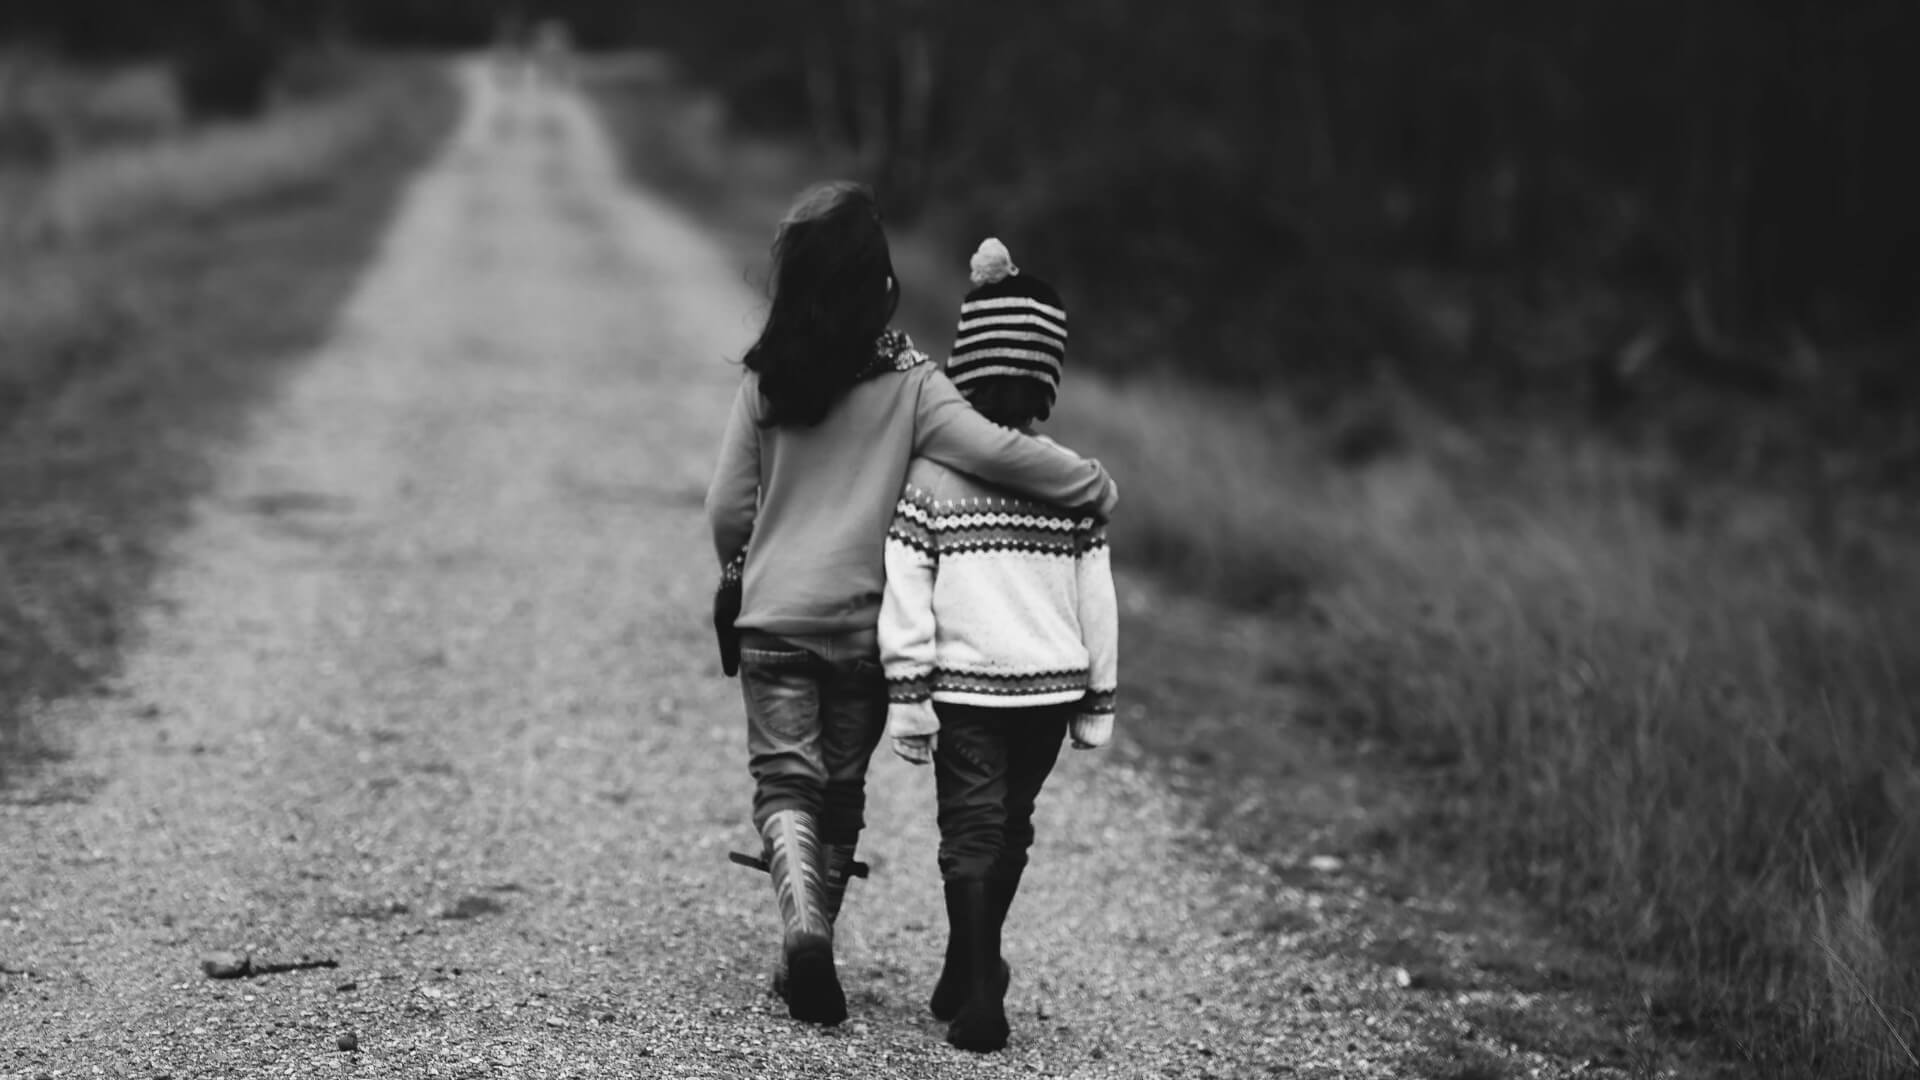 The Happy Side of the Foster Care System